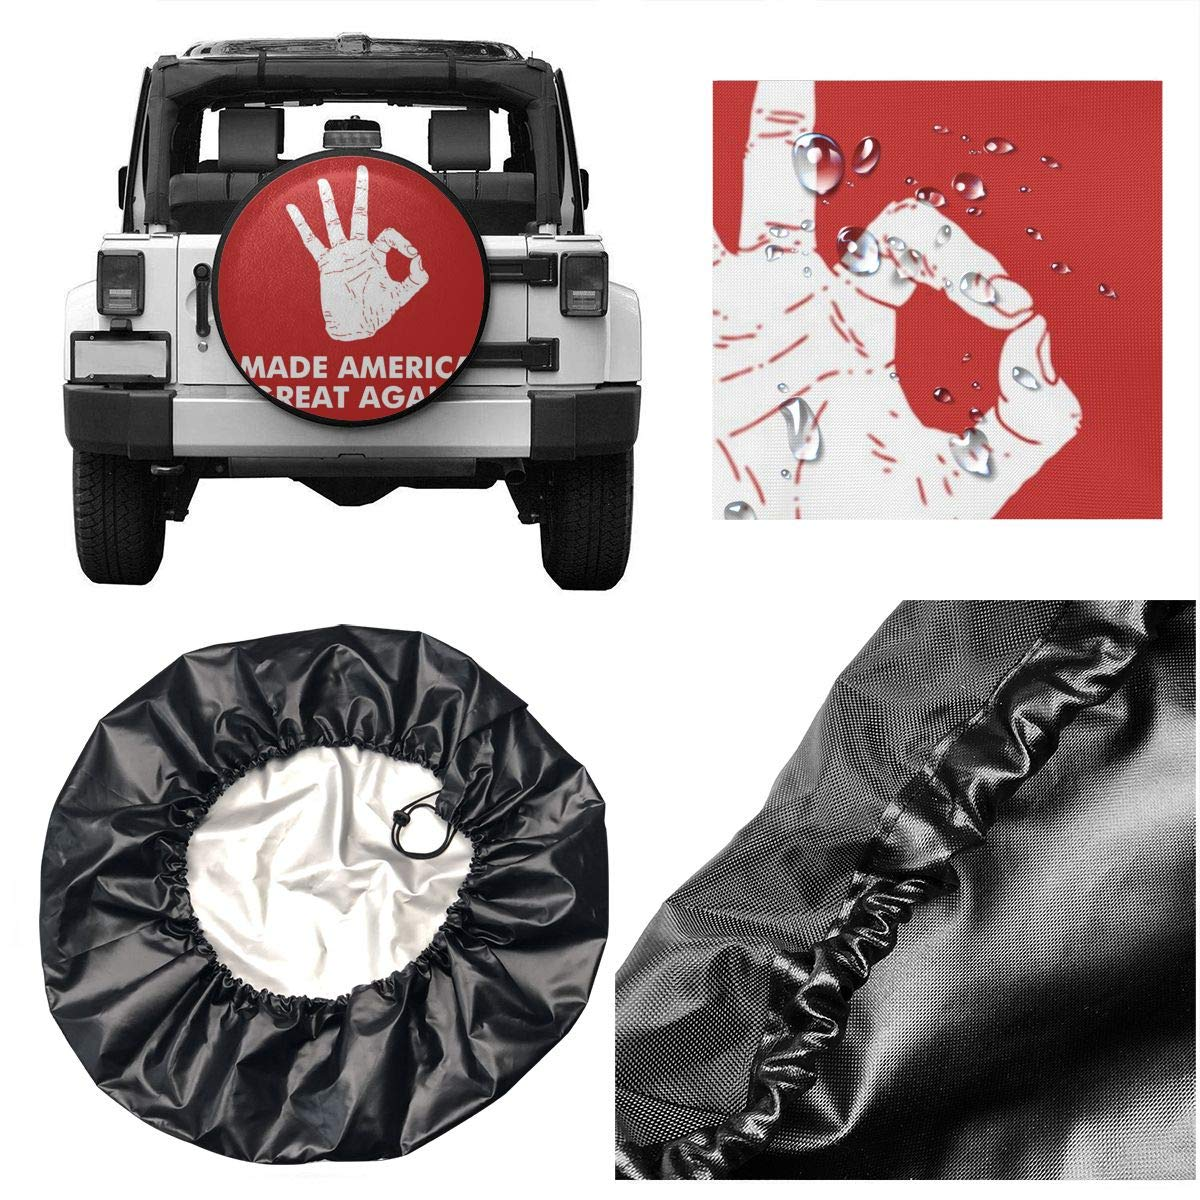 PNNUO RV Trailer Tire Covers for Camper Gorilla Believe Moon Night Spare Tire Wrangler for Motorhome Travel SUV Many Vehicle 14 15 16 17 DIY Wheel Boat Accessories